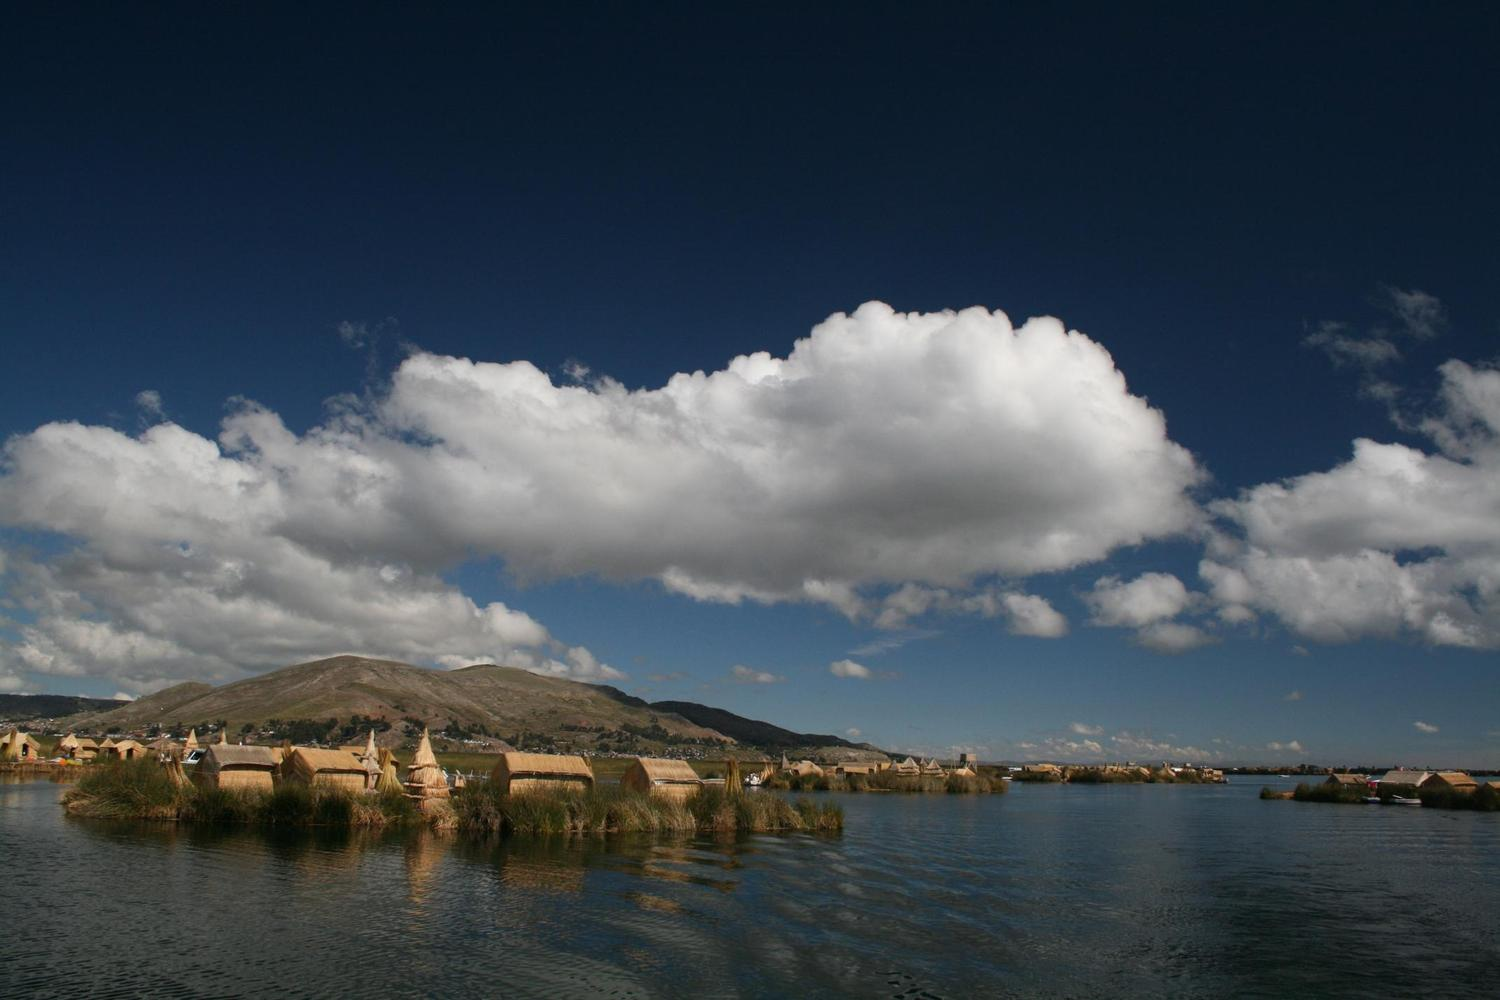 The saturated skies of Lake Titicaca and the Uros floating islands